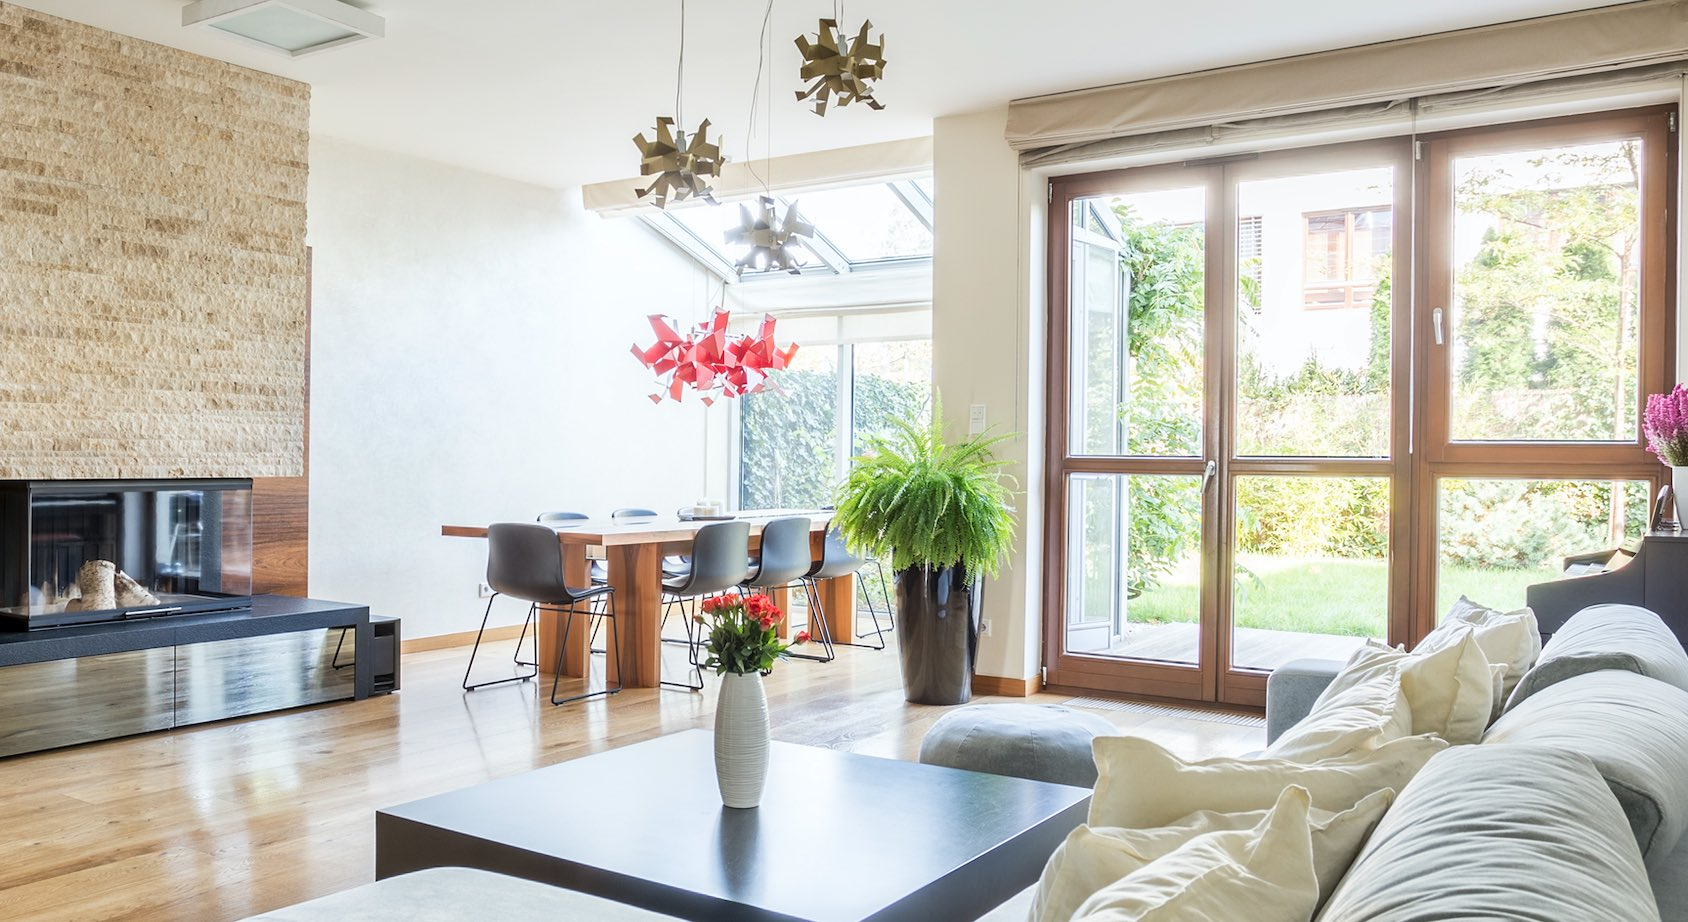 Like Home Improvement Projects? Window Film Offers Great Benefits! - Home Window Tinting in Buffalo, New York